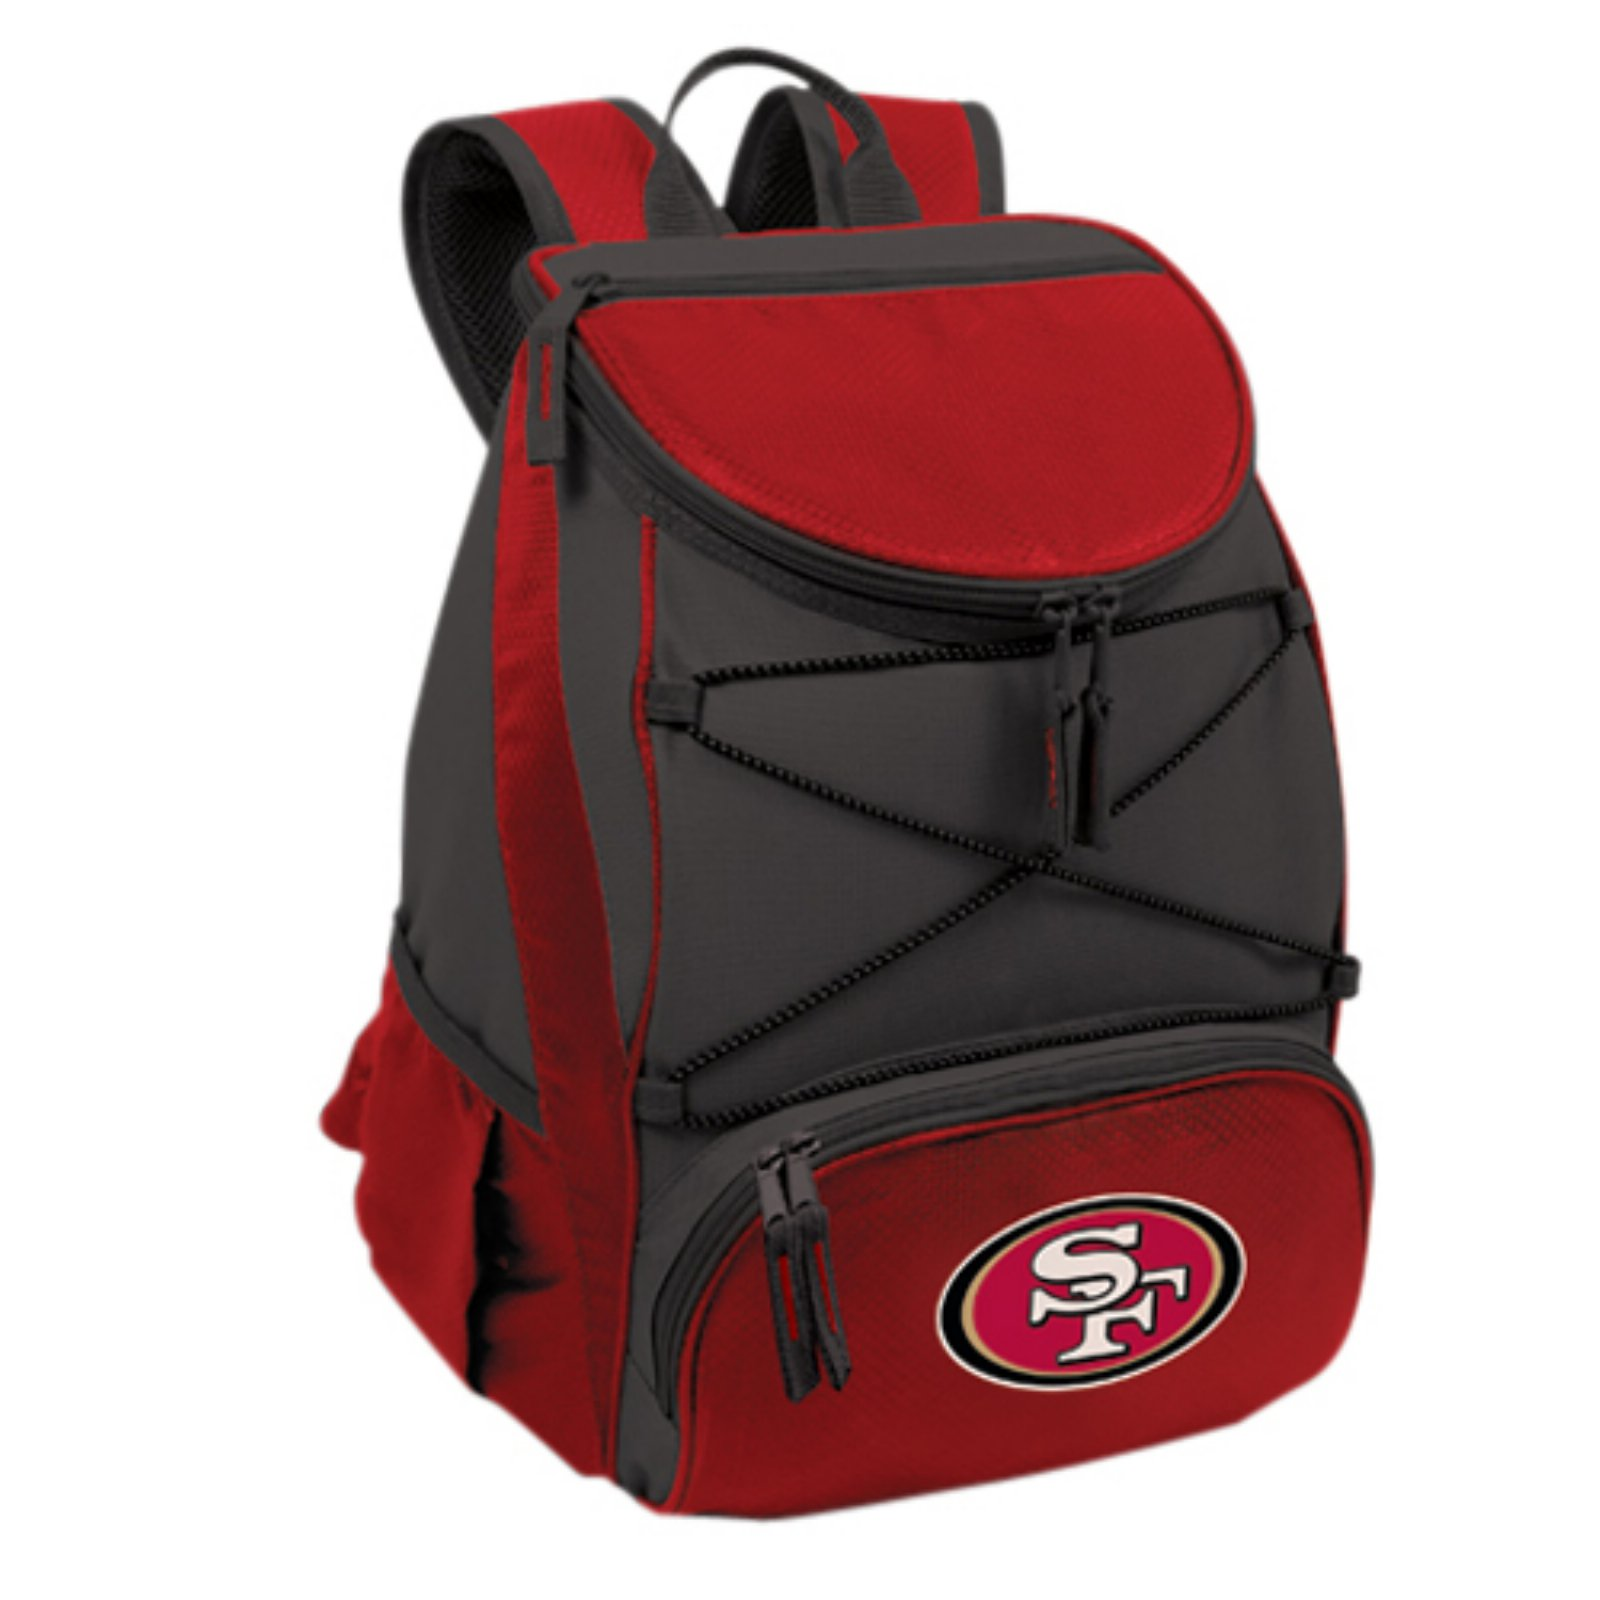 Picnic Time PTX Cooler, Red San Francisco 49ers Digital Print